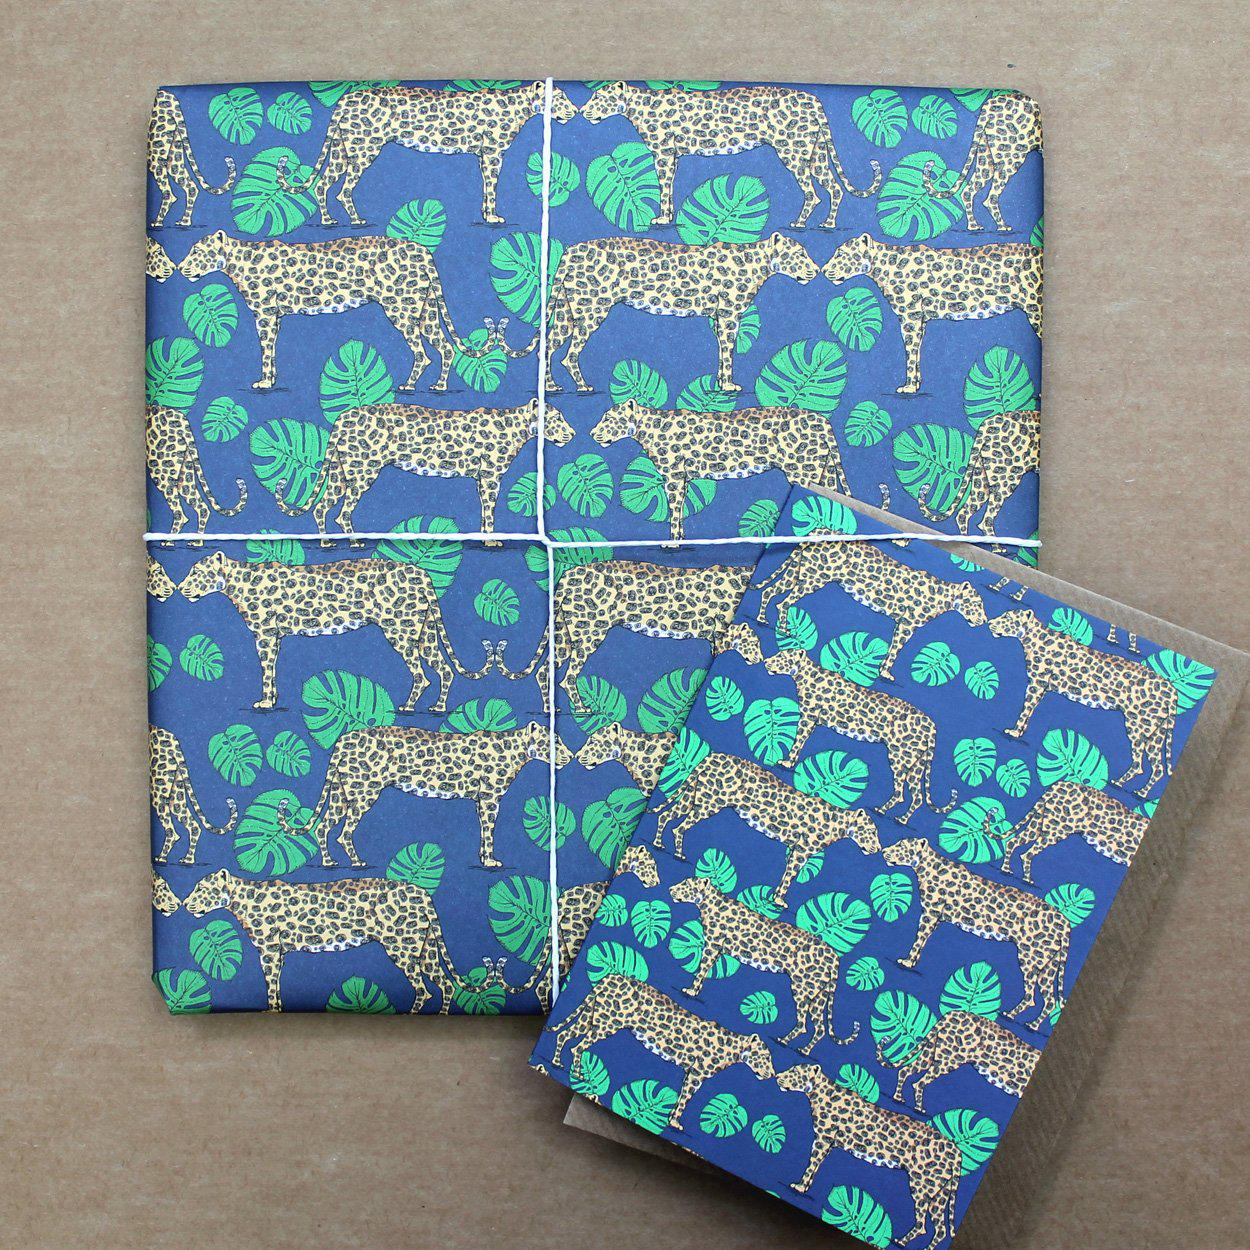 ... Leopard and Monstera Leaf Gift Wrap ...